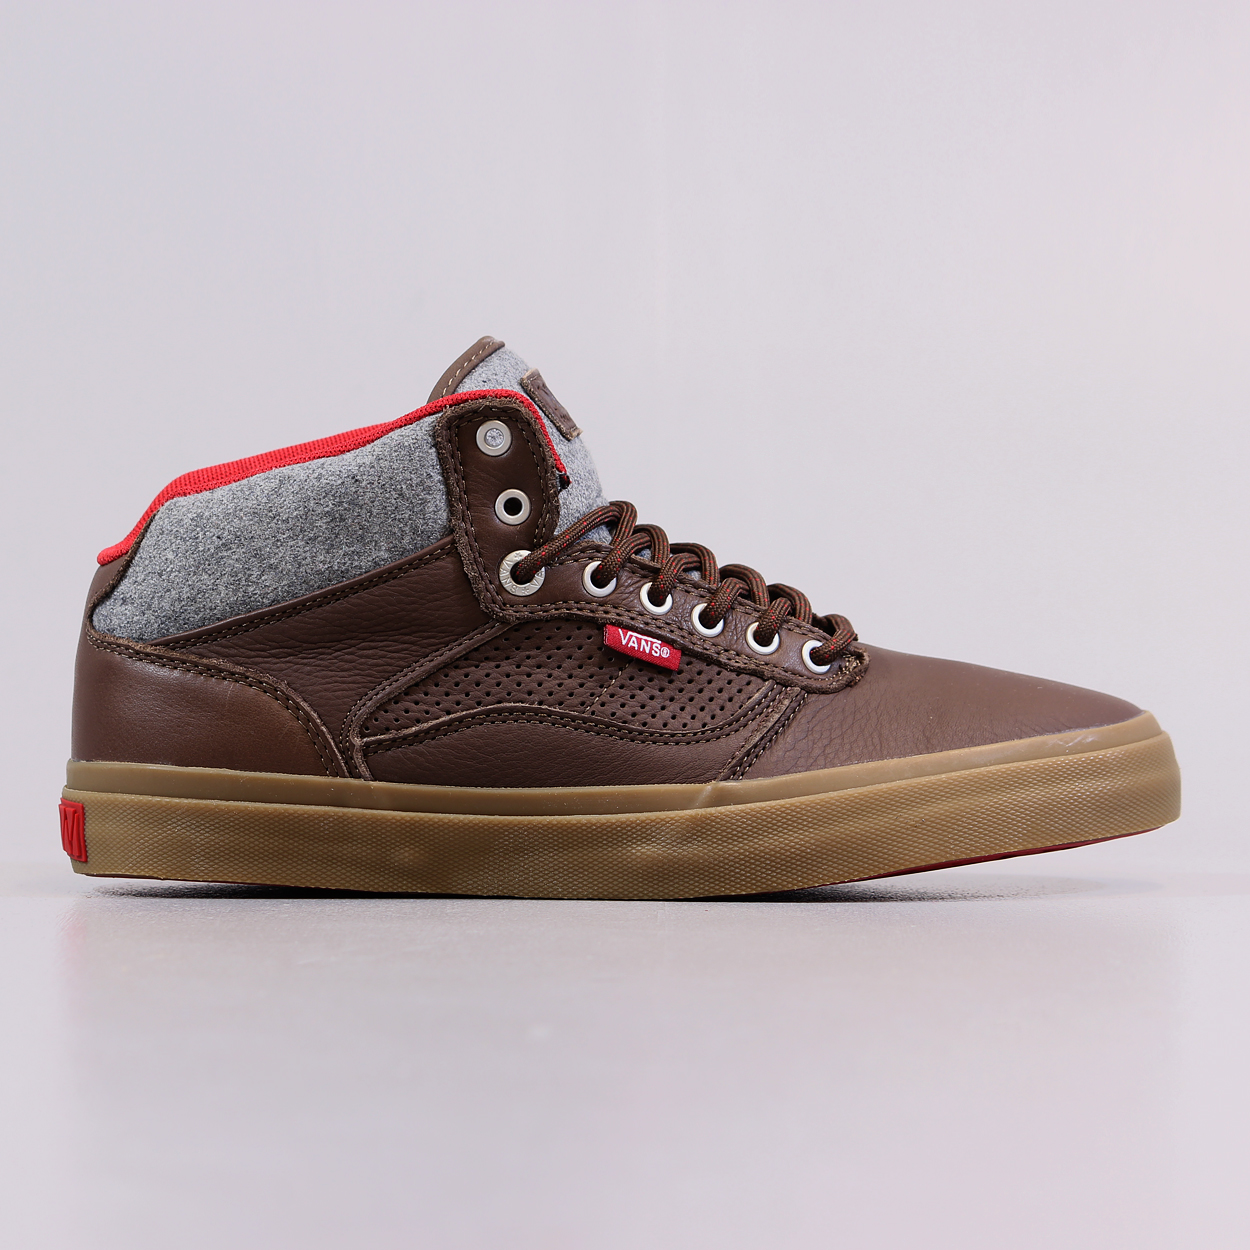 da83339cd9 Vans Off The Wall Mid Top Bedford Brown Leather Skate Shoes £45.00